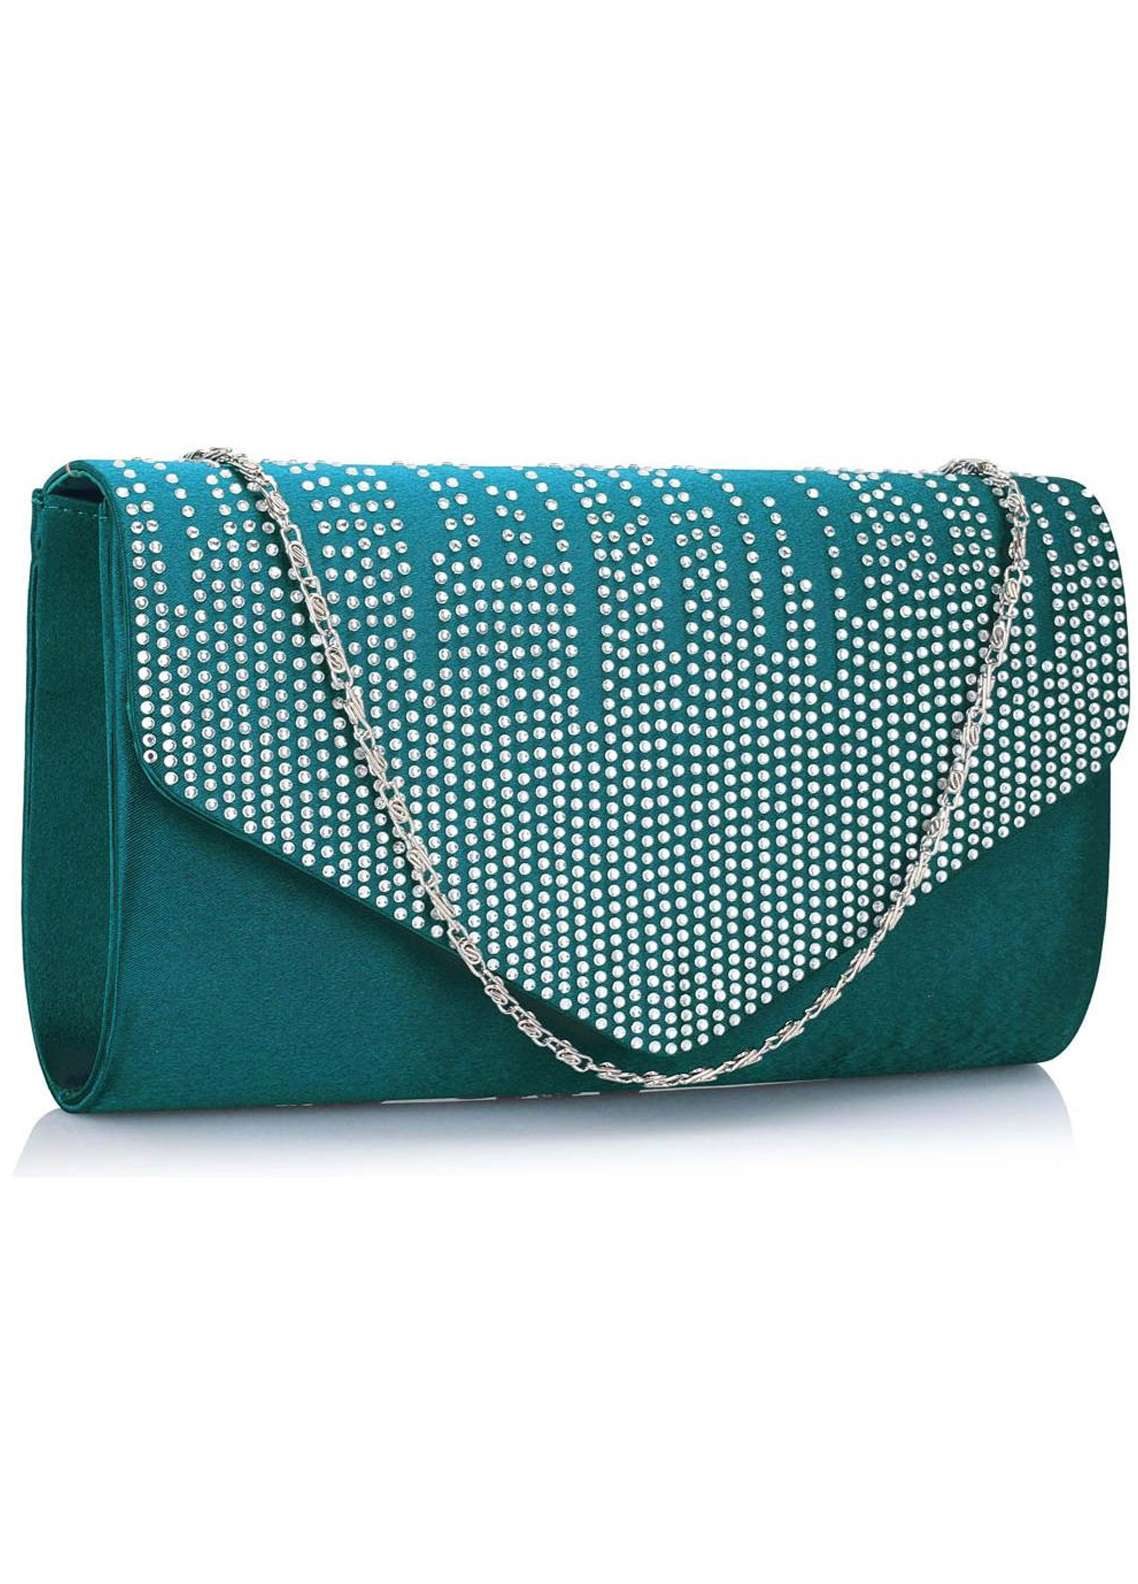 Leesun London  Faux Leather Purse Bags  for Women  Teal with Plain Texture